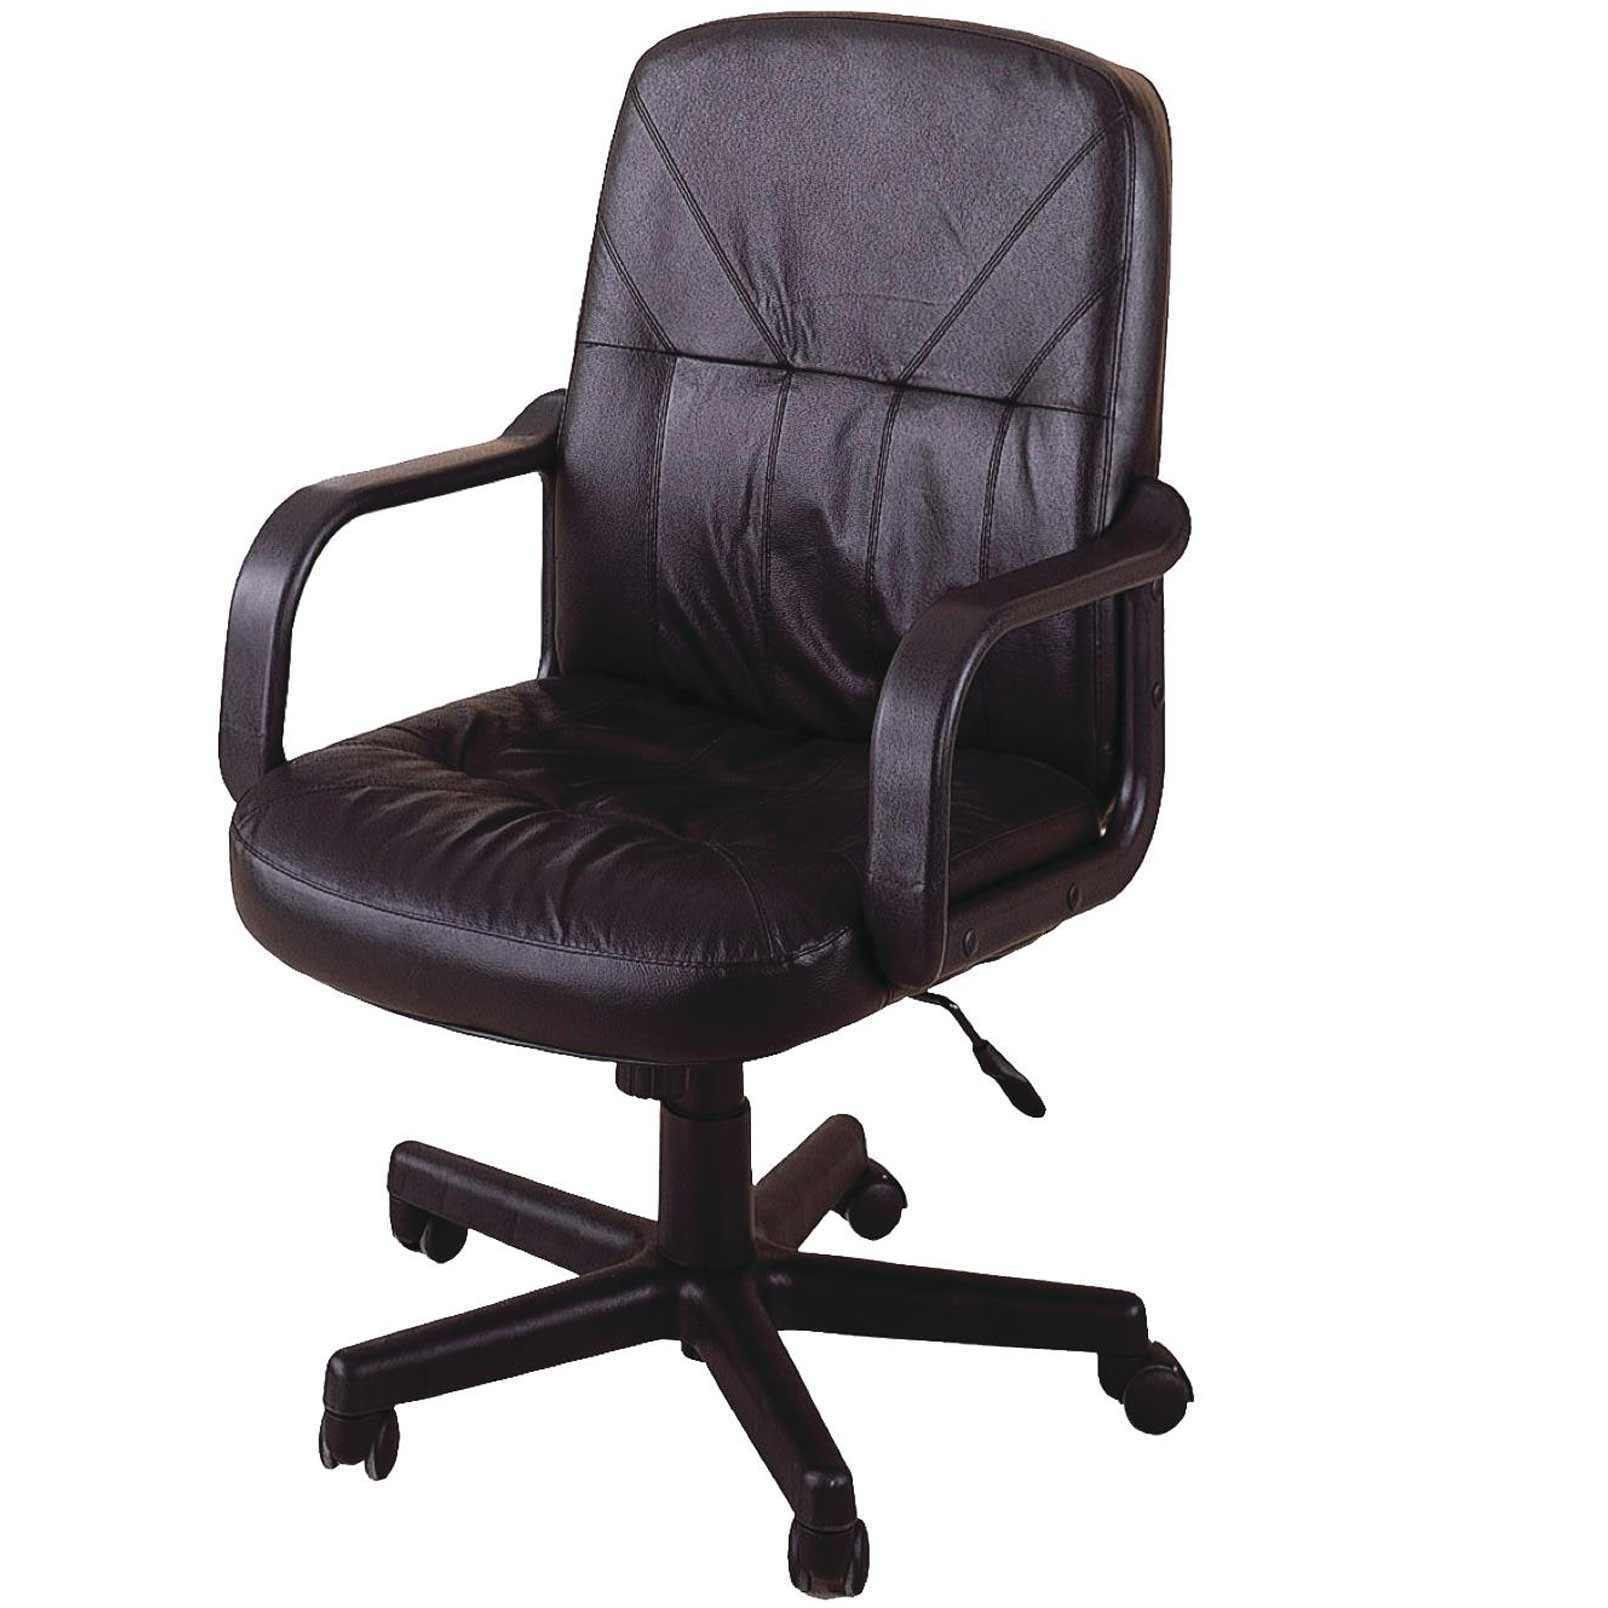 Office chairs brown leather office chairs for Home office chairs leather